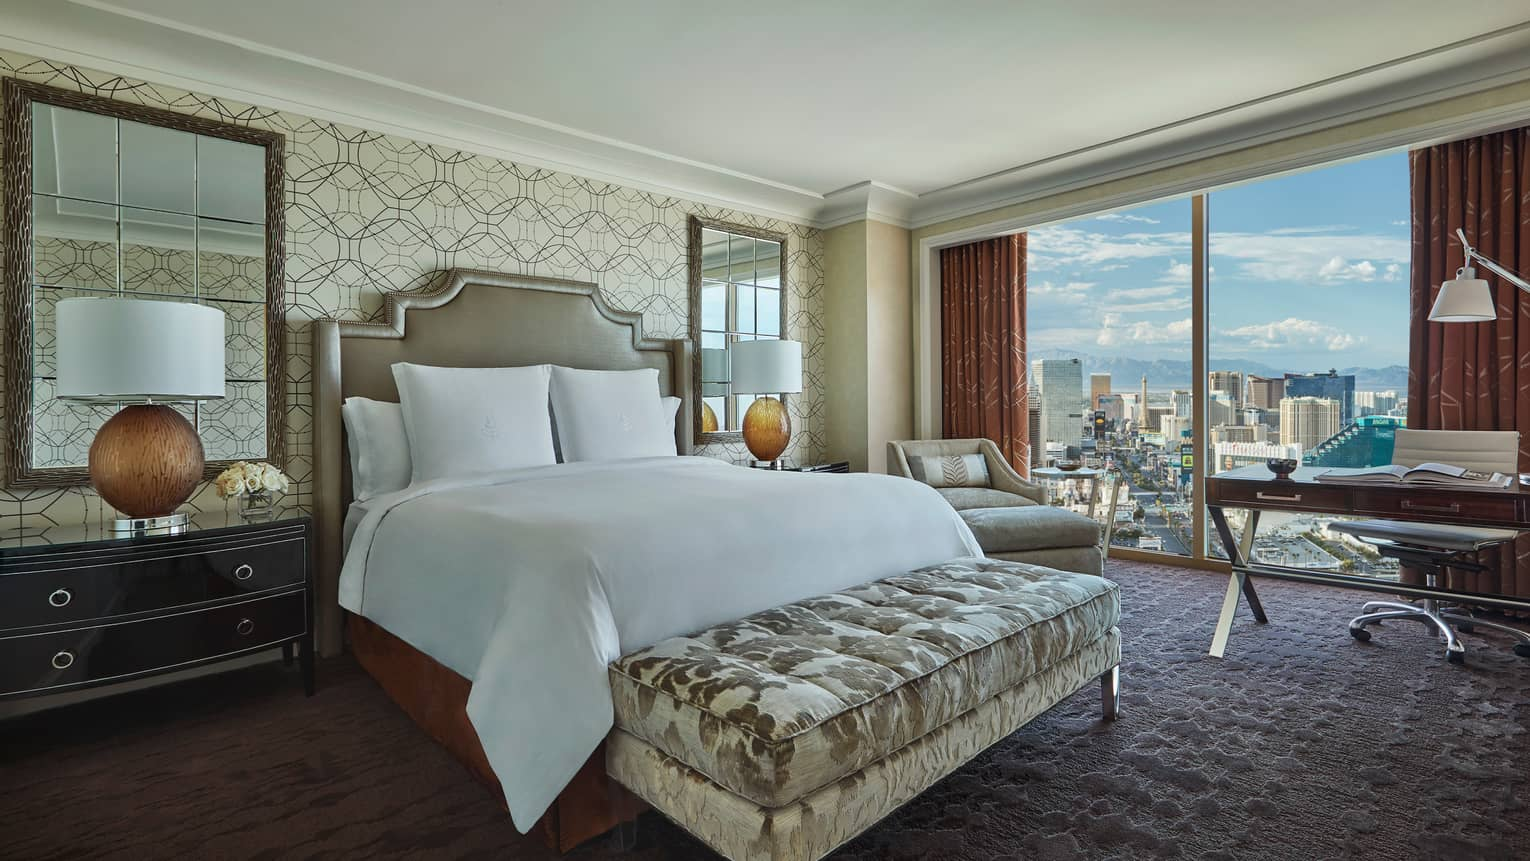 Strip-View room bed with plush velvet bench, mirrors, lamps by bed, desk by window